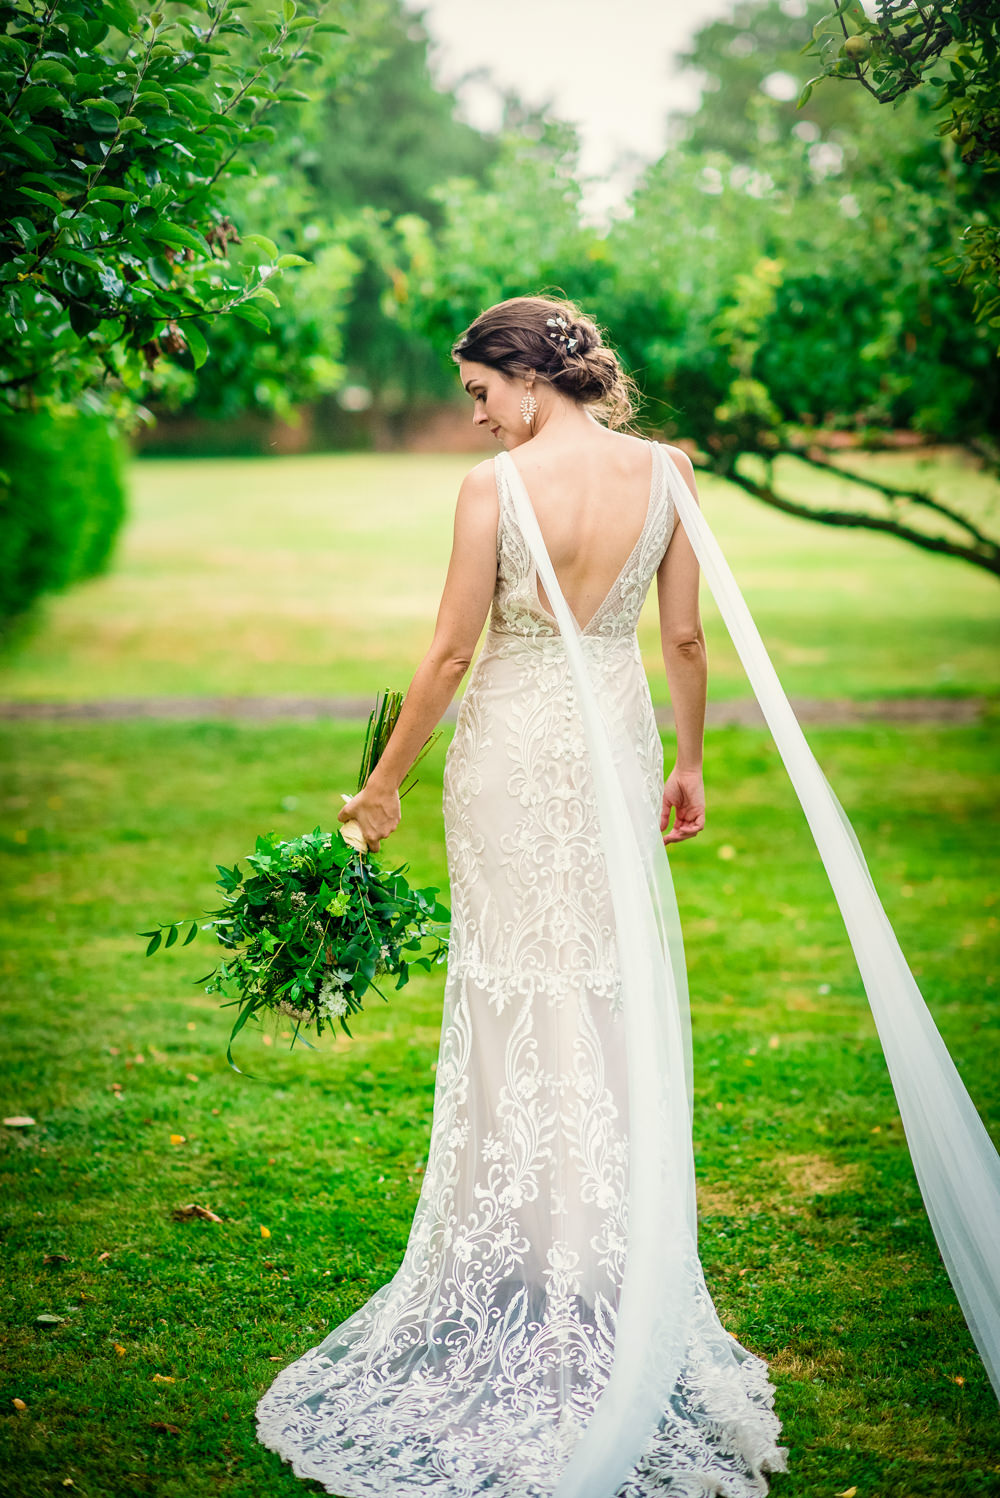 Dress Gown Bride Bridal Made with Love Lace Colville Hall Wedding GK Photography